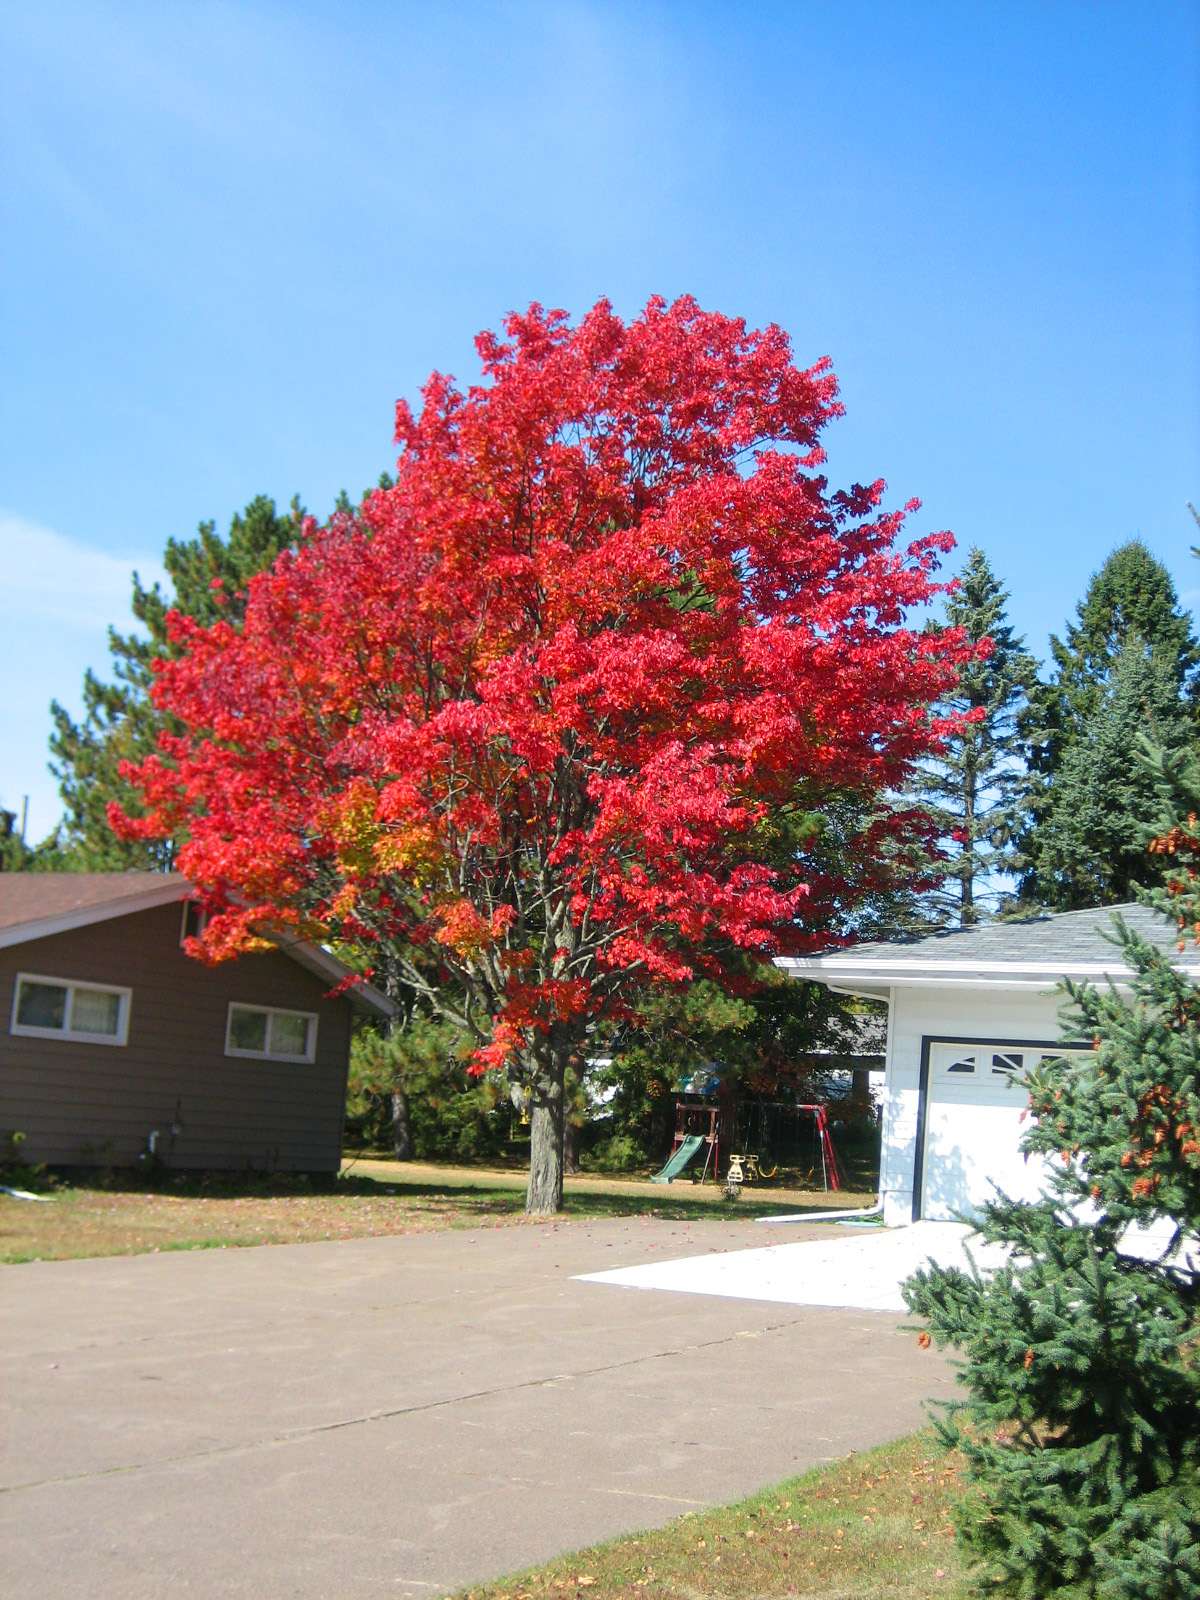 Craigslist Duluth Superior >> Cummings...and goings...: Week in Review: September 24